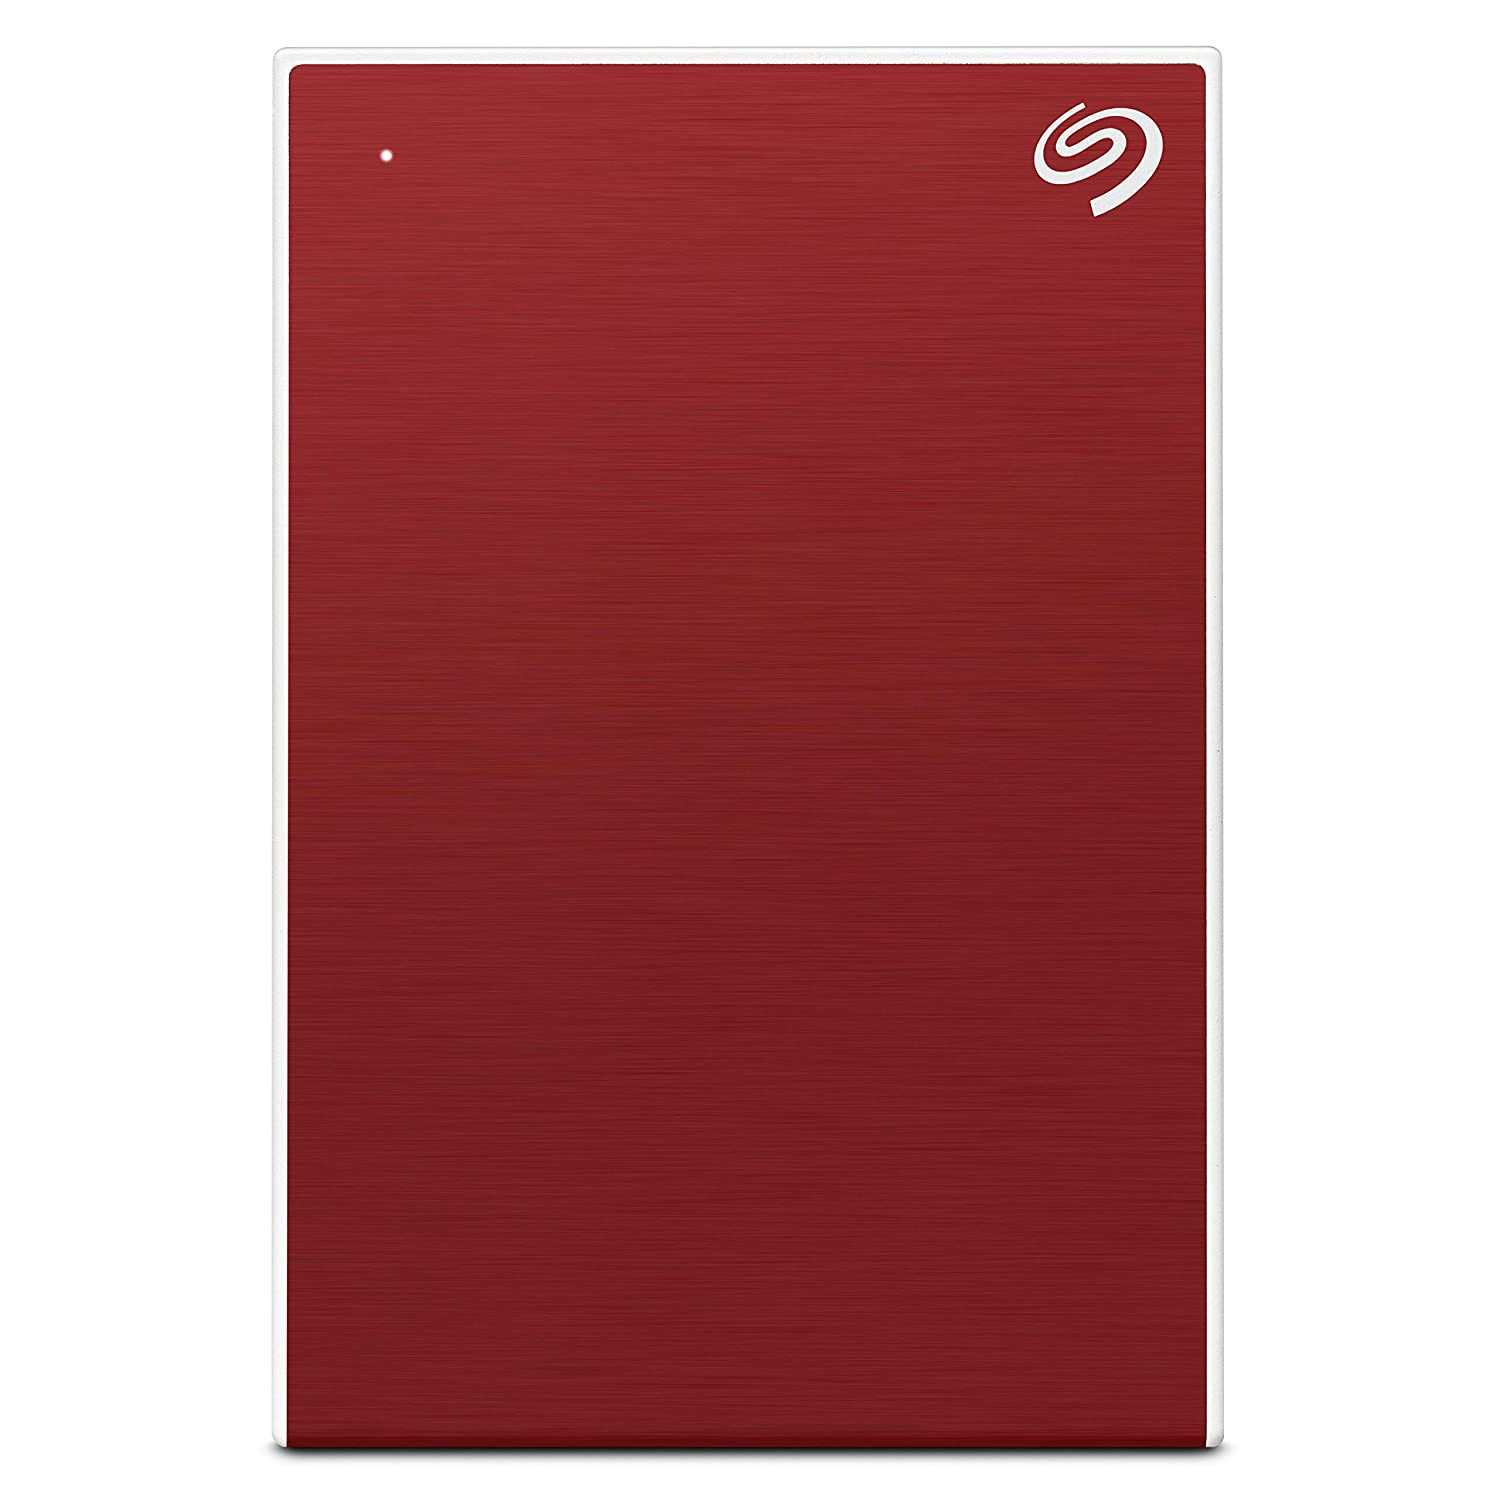 Seagate Backup Plus Portable 5 TB External Hard Drive HDD ??????? Red USB 3.0 for PC Laptop and Mac, 1 Year Mylio Create, 2 Months Adobe CC Photography (STHP5000403)